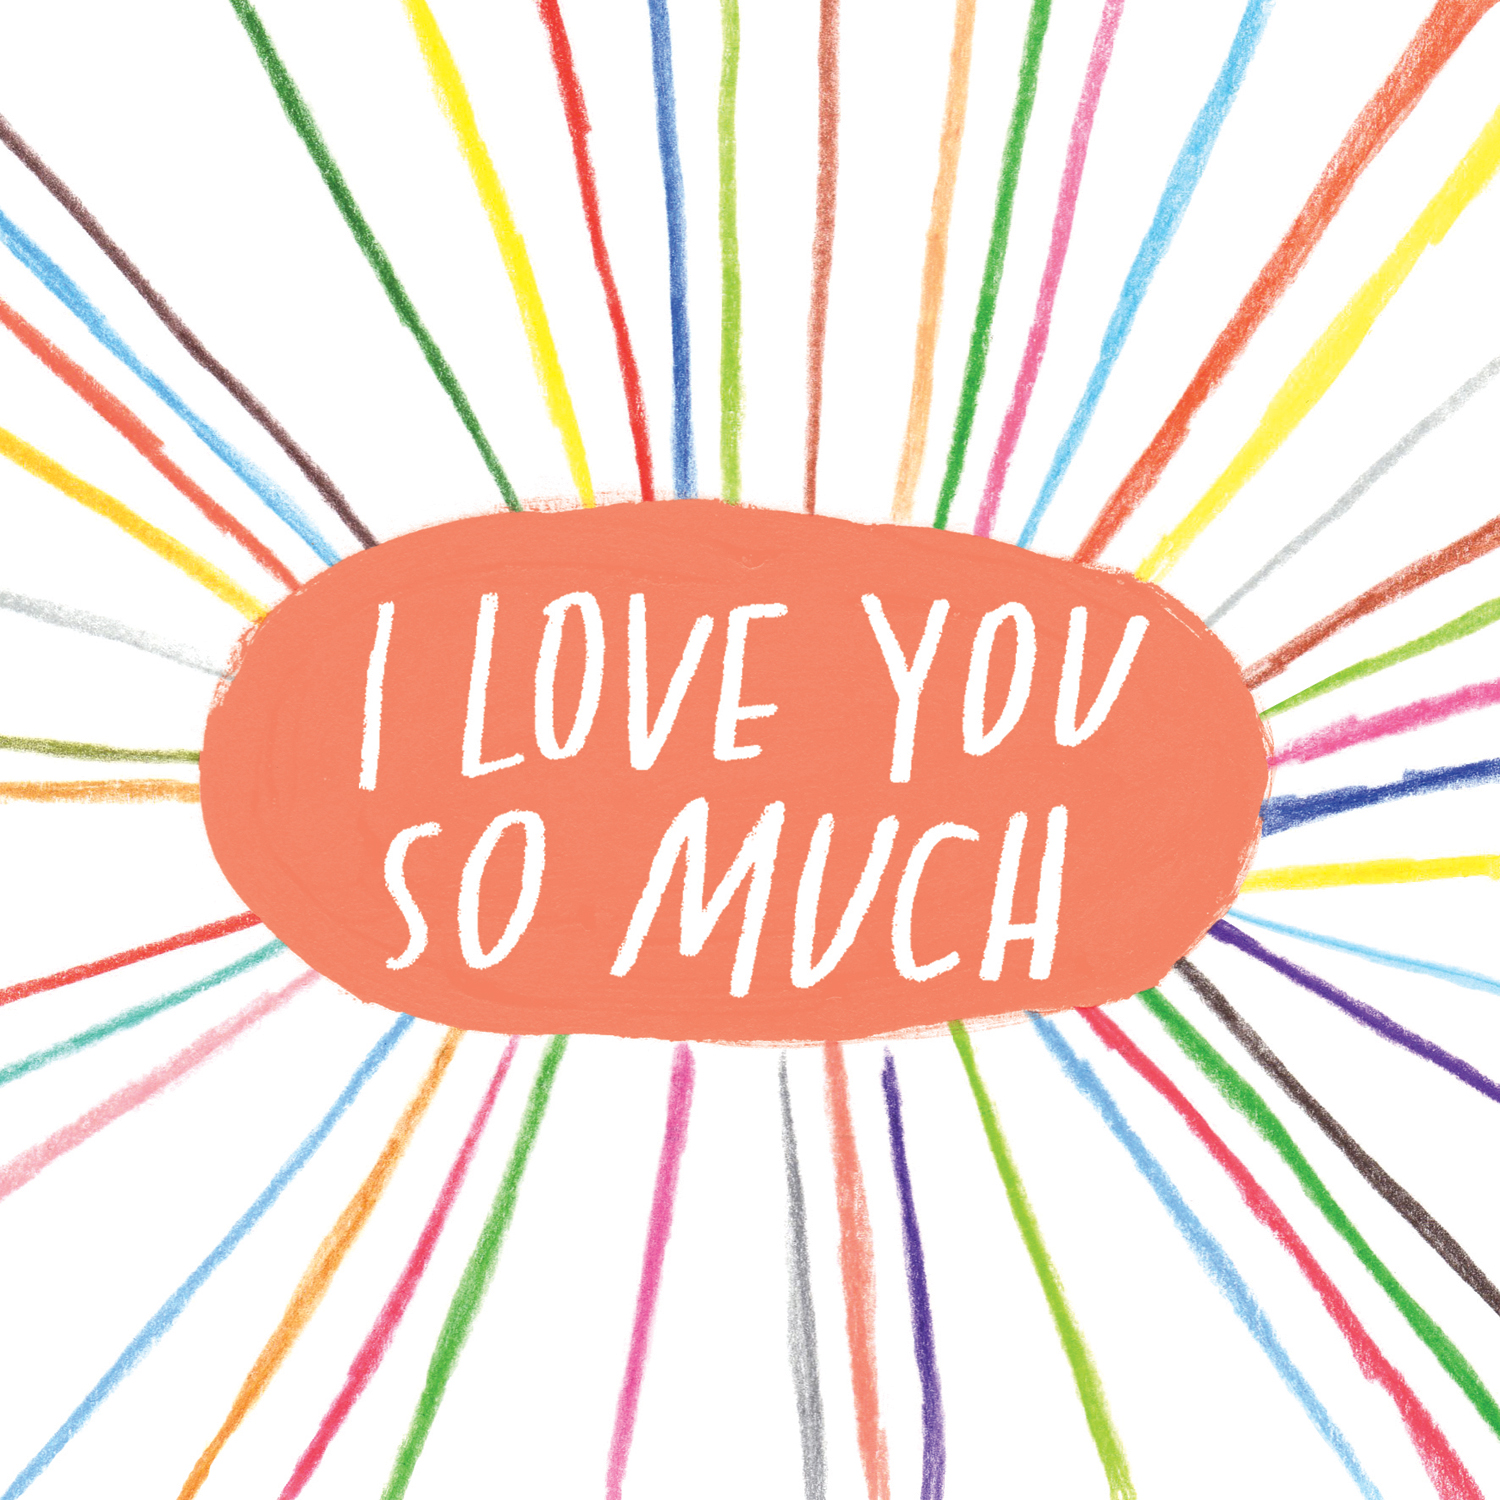 I Love You So Much card design, licensed by U Studio